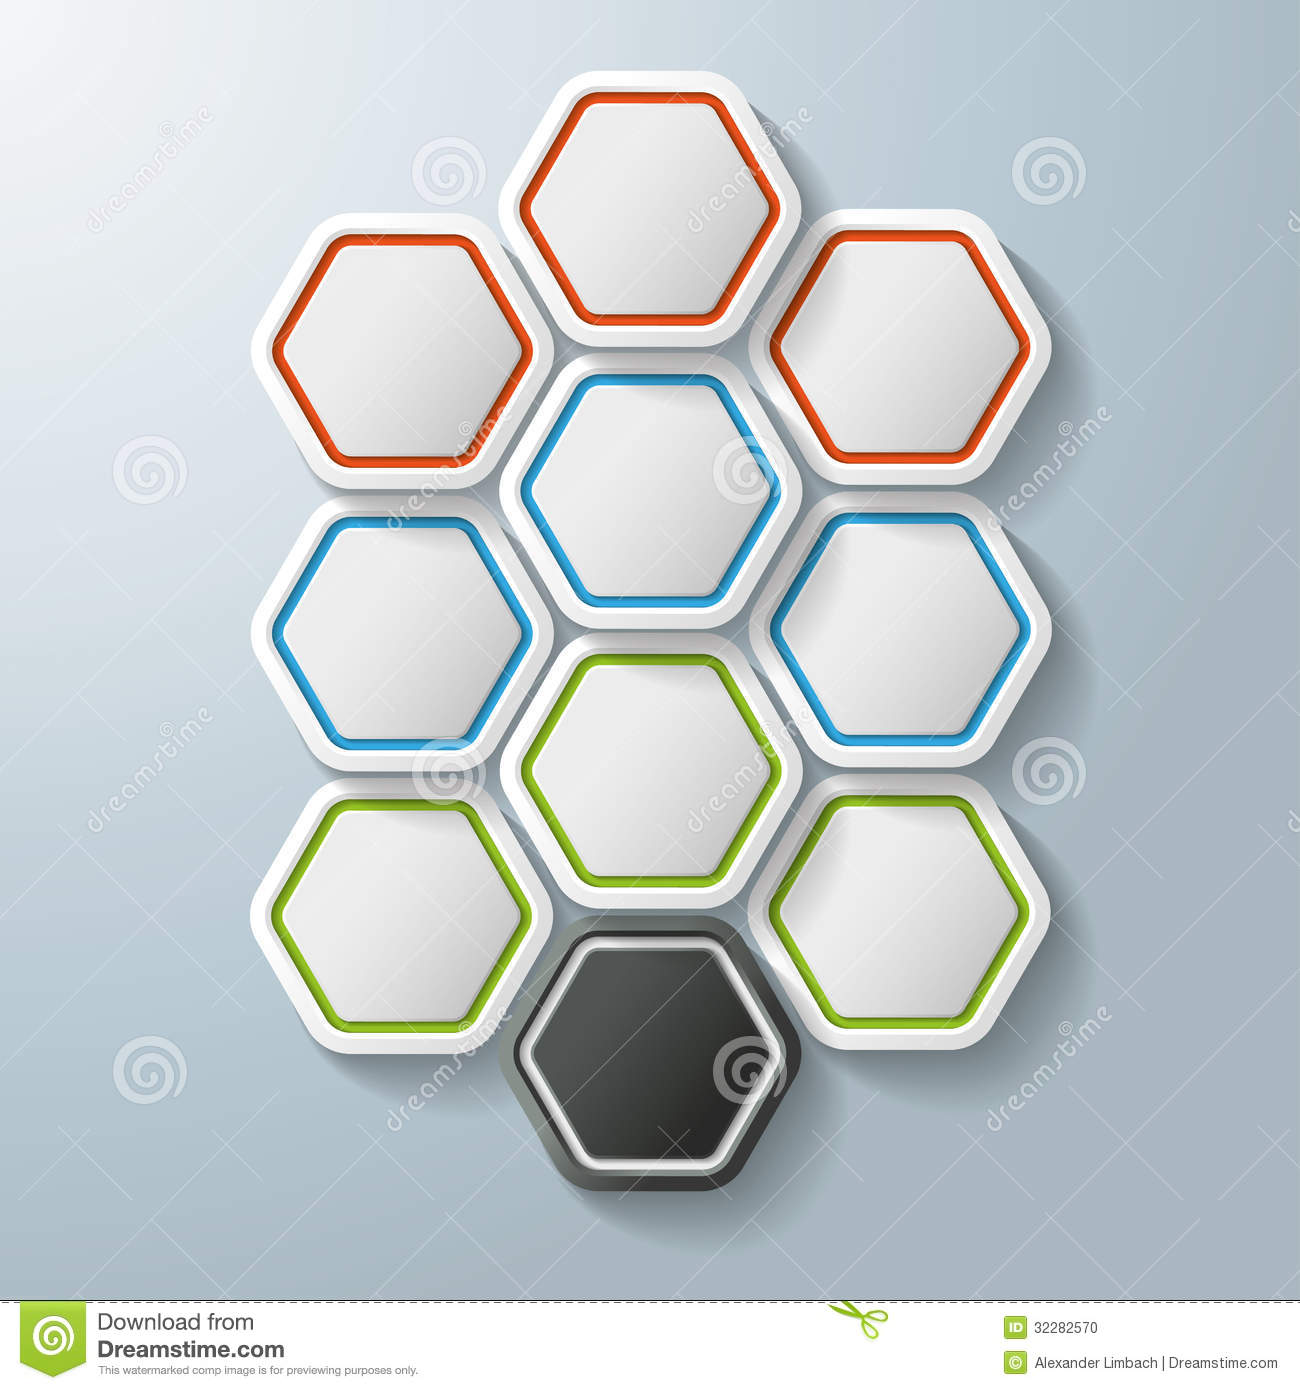 Infographic design on the grey background eps 10 vector file - 10 Colorful Hexagon Options Stock Photo Image 32282570